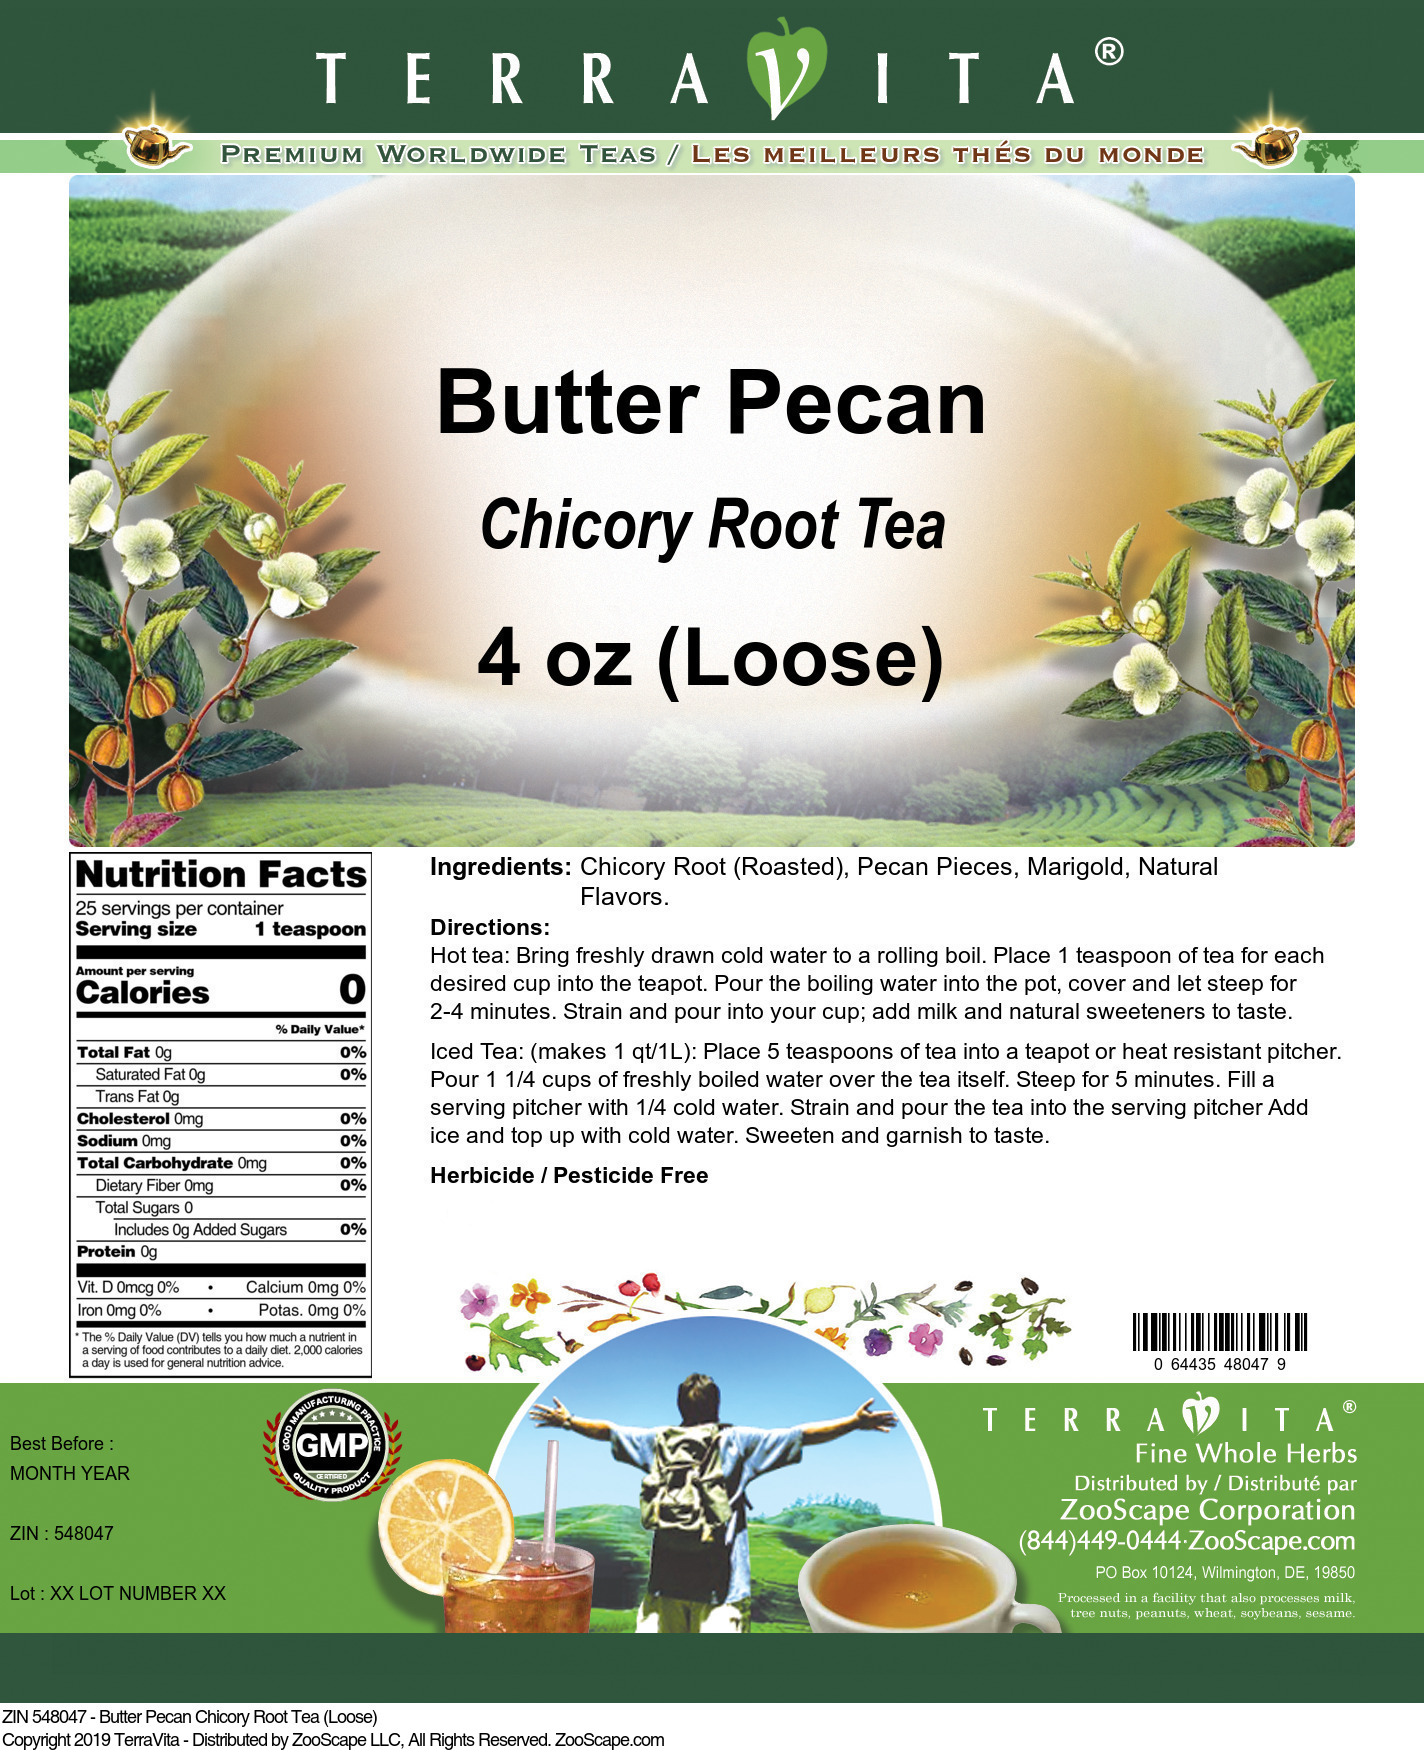 Butter Pecan Chicory Root Tea (Loose)